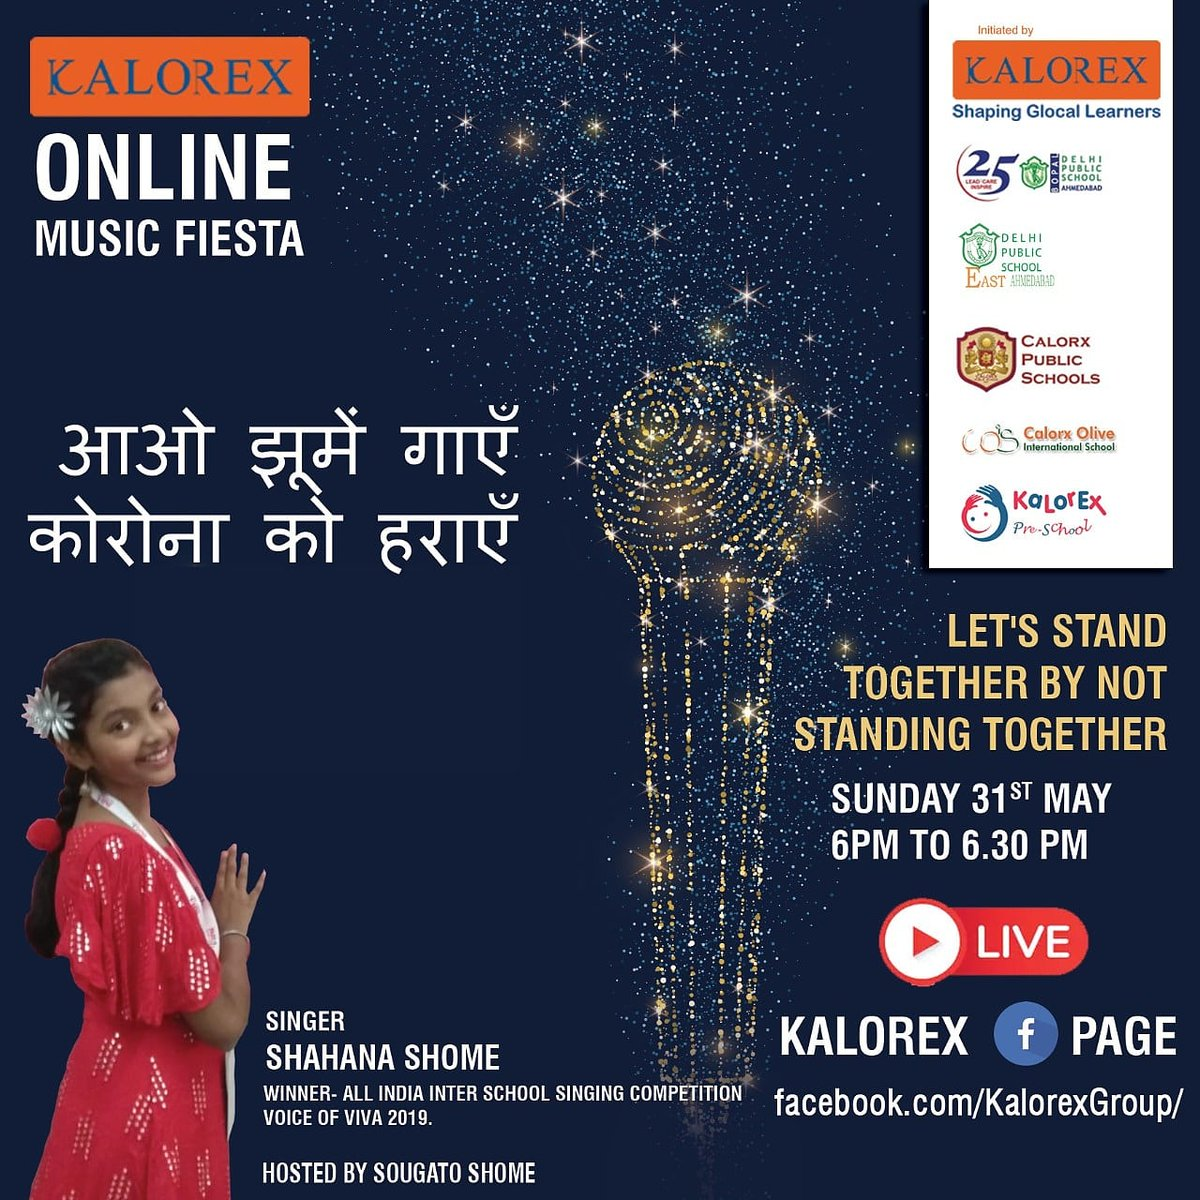 Kalorex Group is going live for Online Music Fiesta on Sunday 31st May at 6.00 PM to 6.30 PM. Let's Stand Together by Not Standing Together With  Shahana Shome only on Kalorex Group FB Page, Stay Tune, Stay Safe & Stay at Home.   #Kalorex #KOMF #FBLive https://t.co/m4HaOZ2YN1